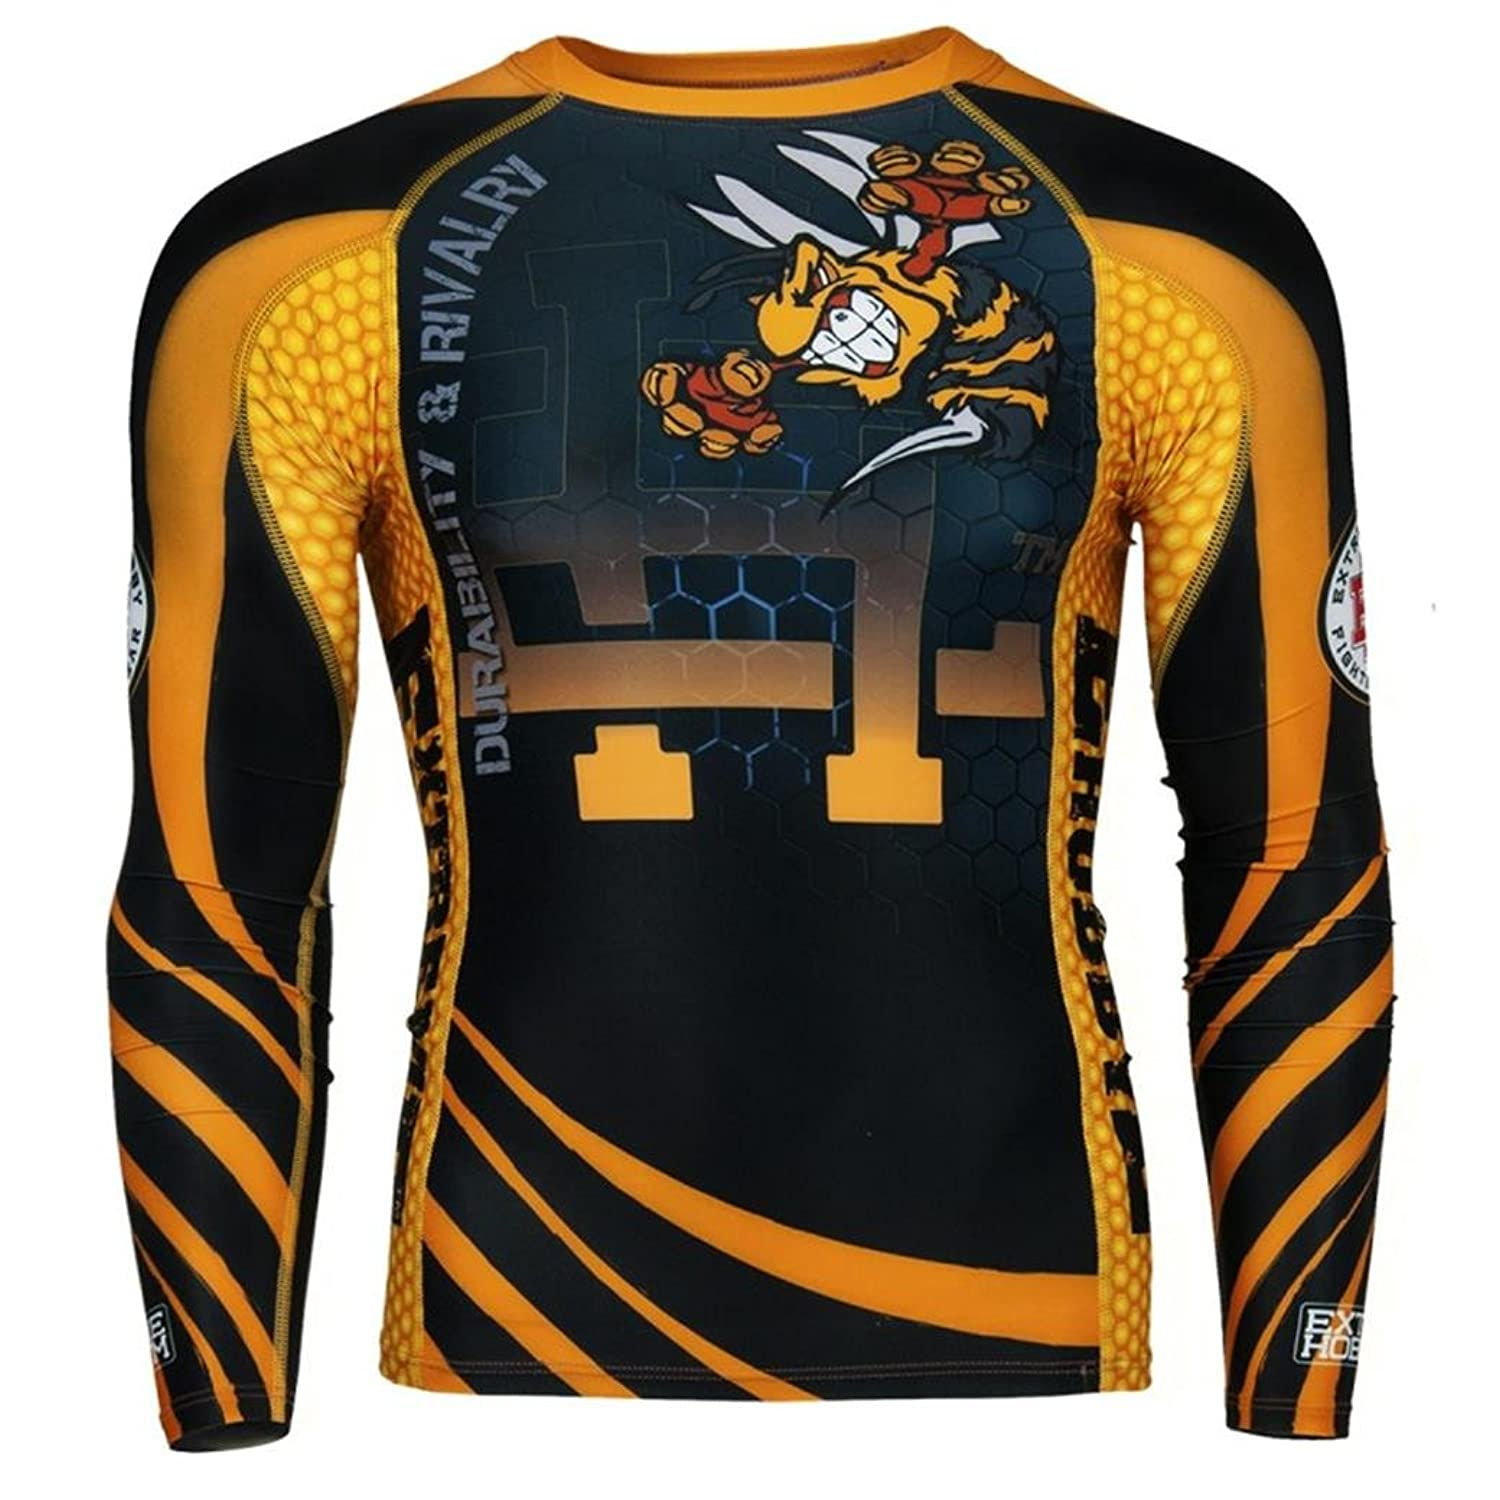 Image of Extreme Hobby Wasp Long Sleeve Rash Guard Top